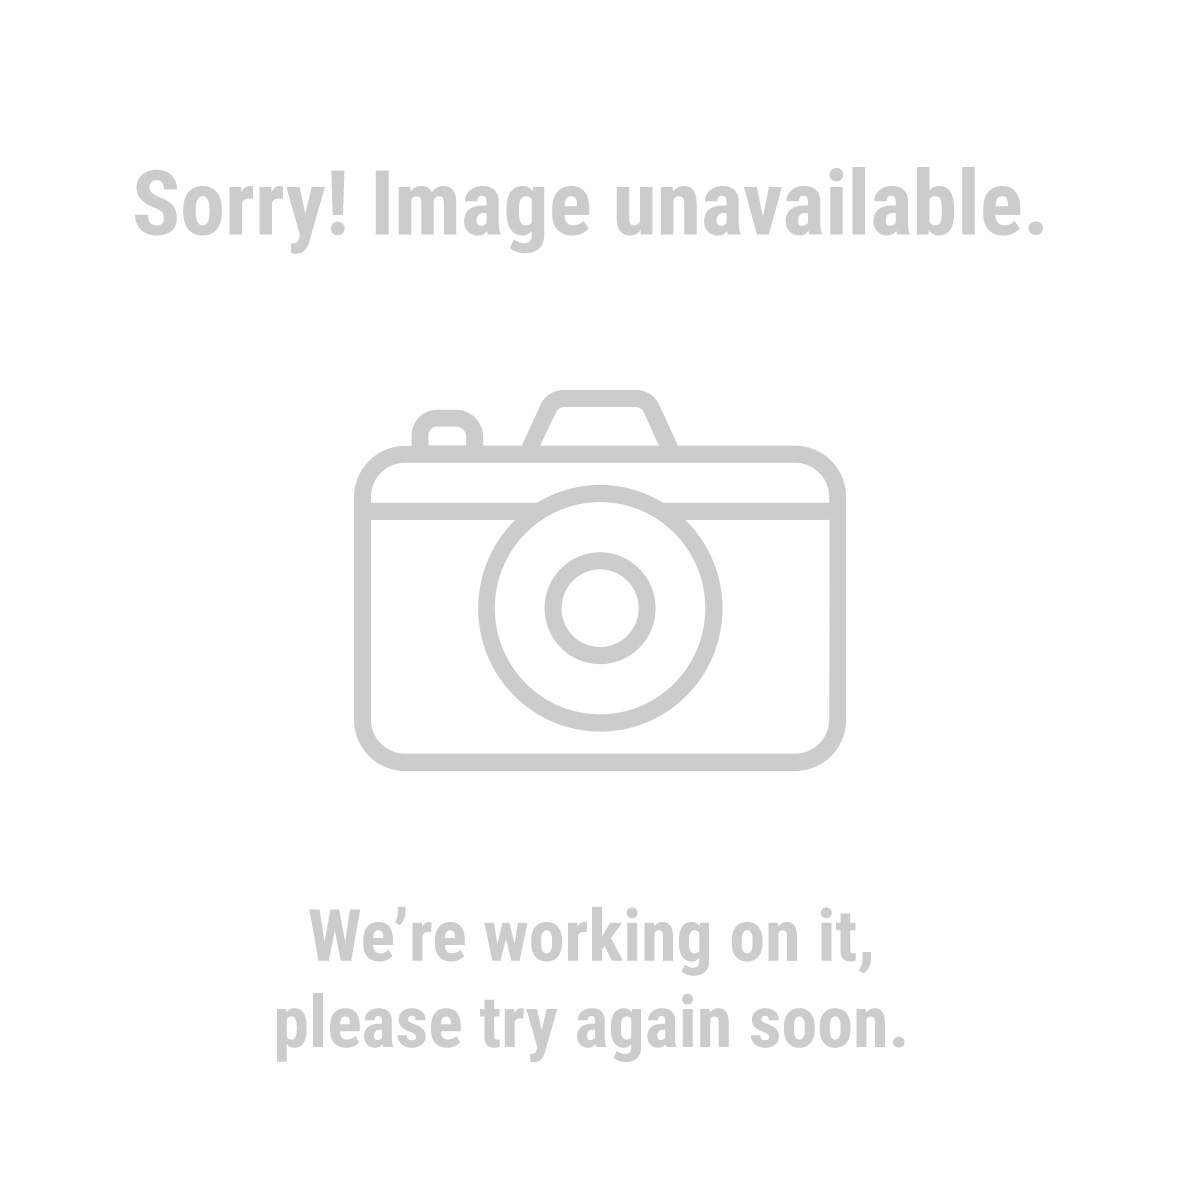 Cen-Tech 60653 Battery Charger and Engine Starter, 10/2/50 Amp, 12 Volt